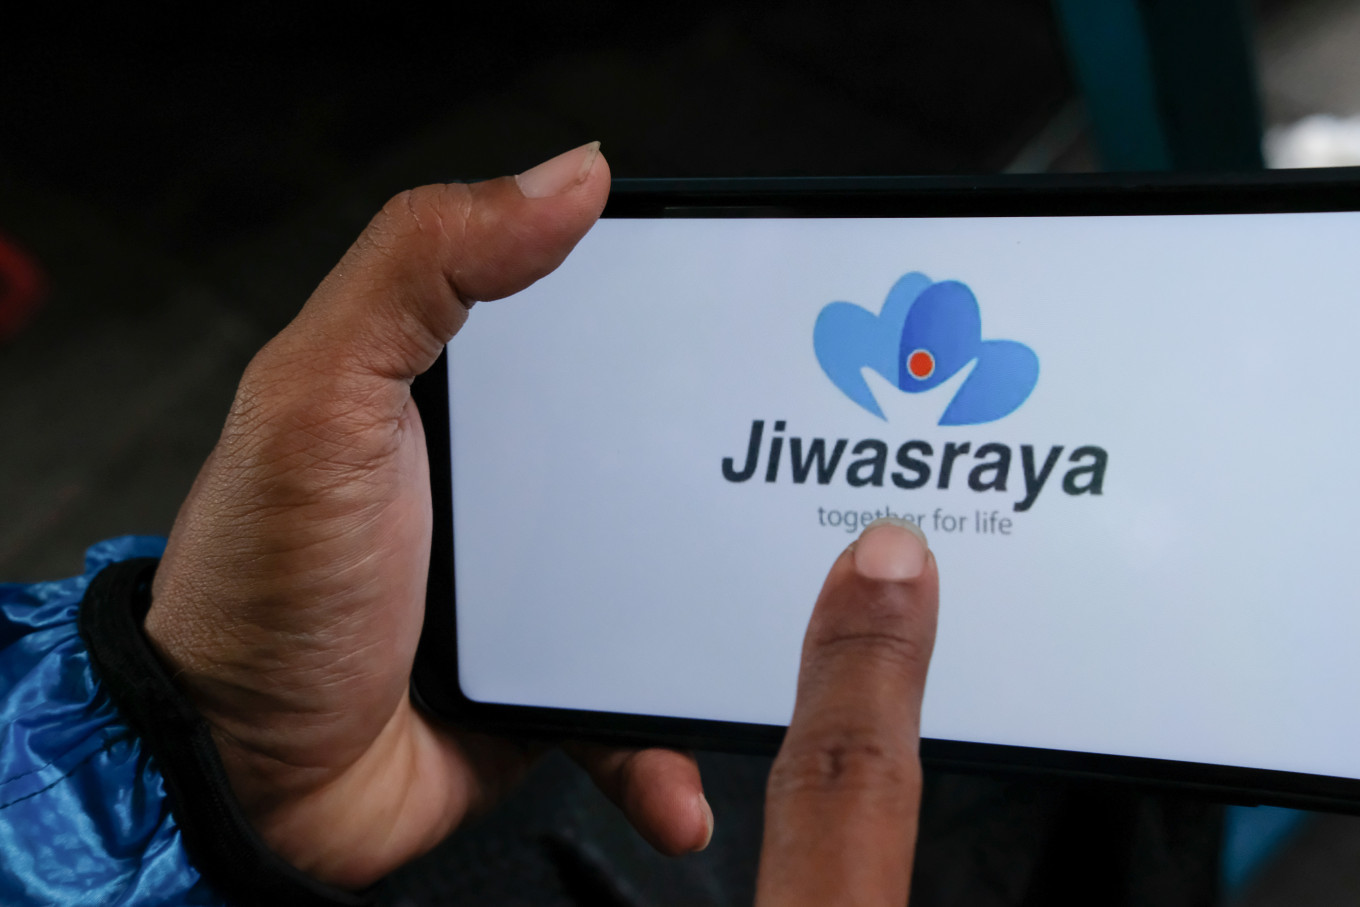 Jiwasraya case won't hit mutual fund industry hard: Association, expert